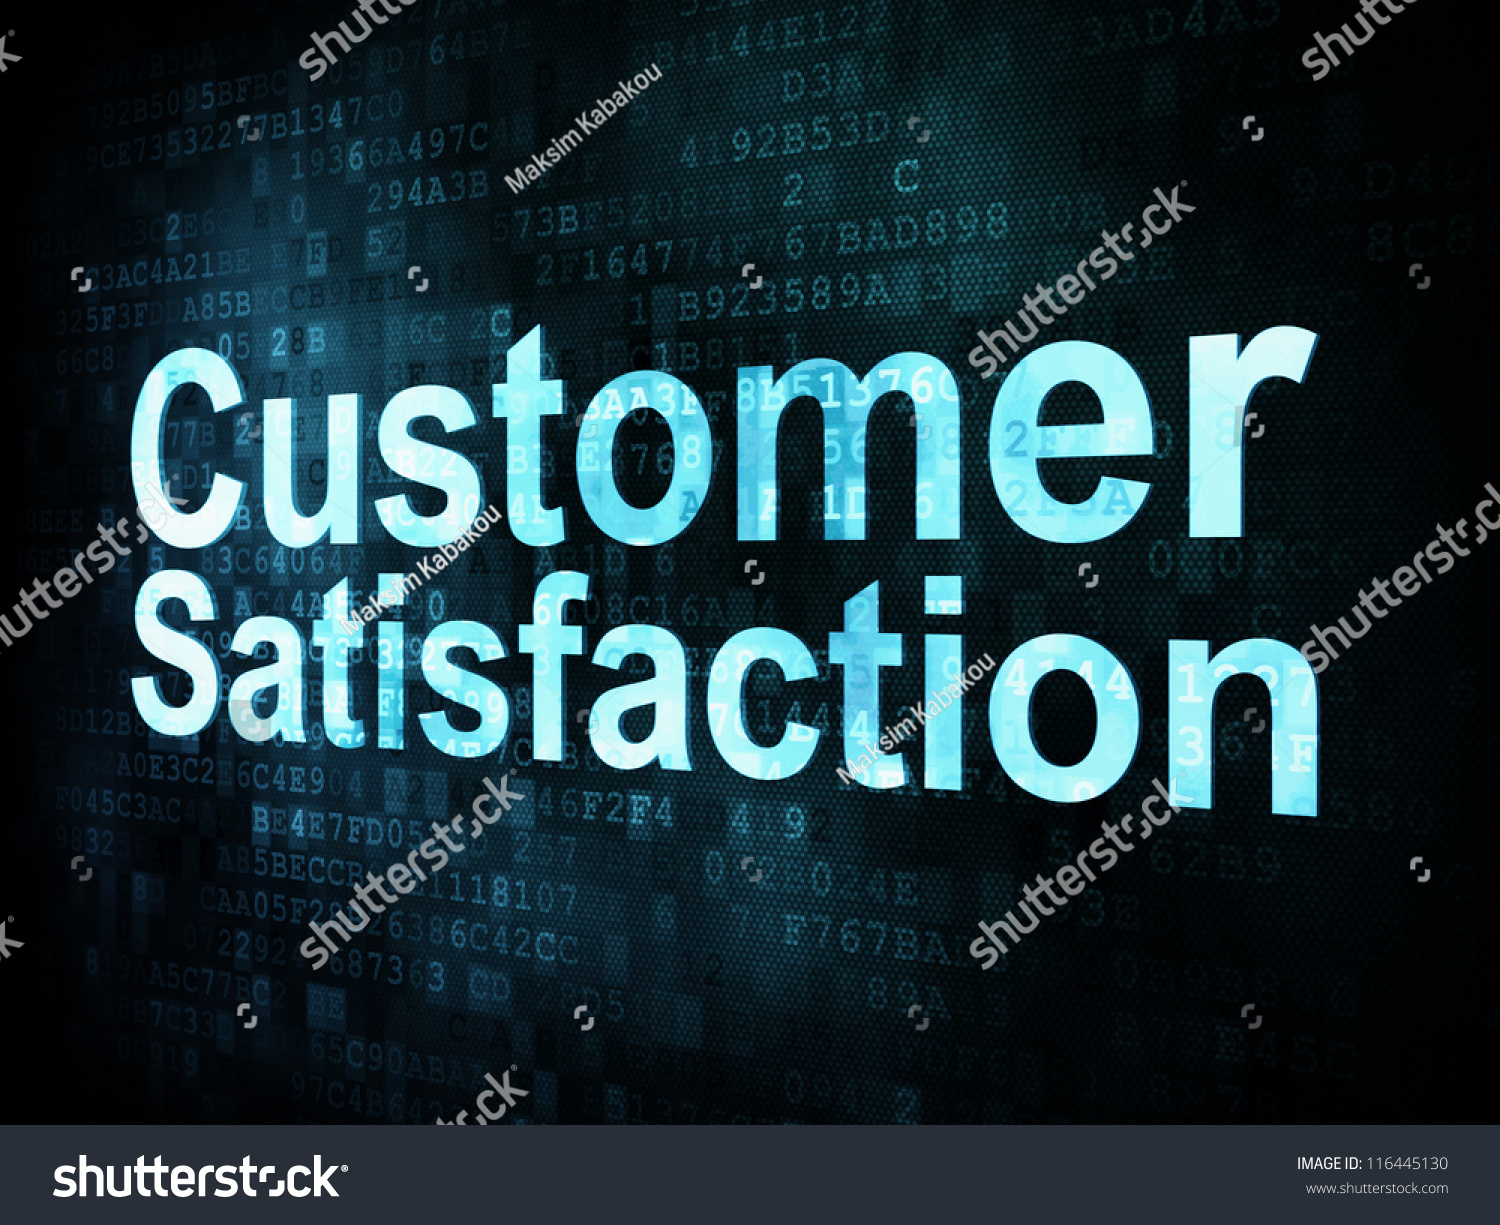 value and satisfaction in marketing concept Experiential value, and customer satisfaction and further discussing the rela-  concept in the marketing field, about which little research has been conducted.